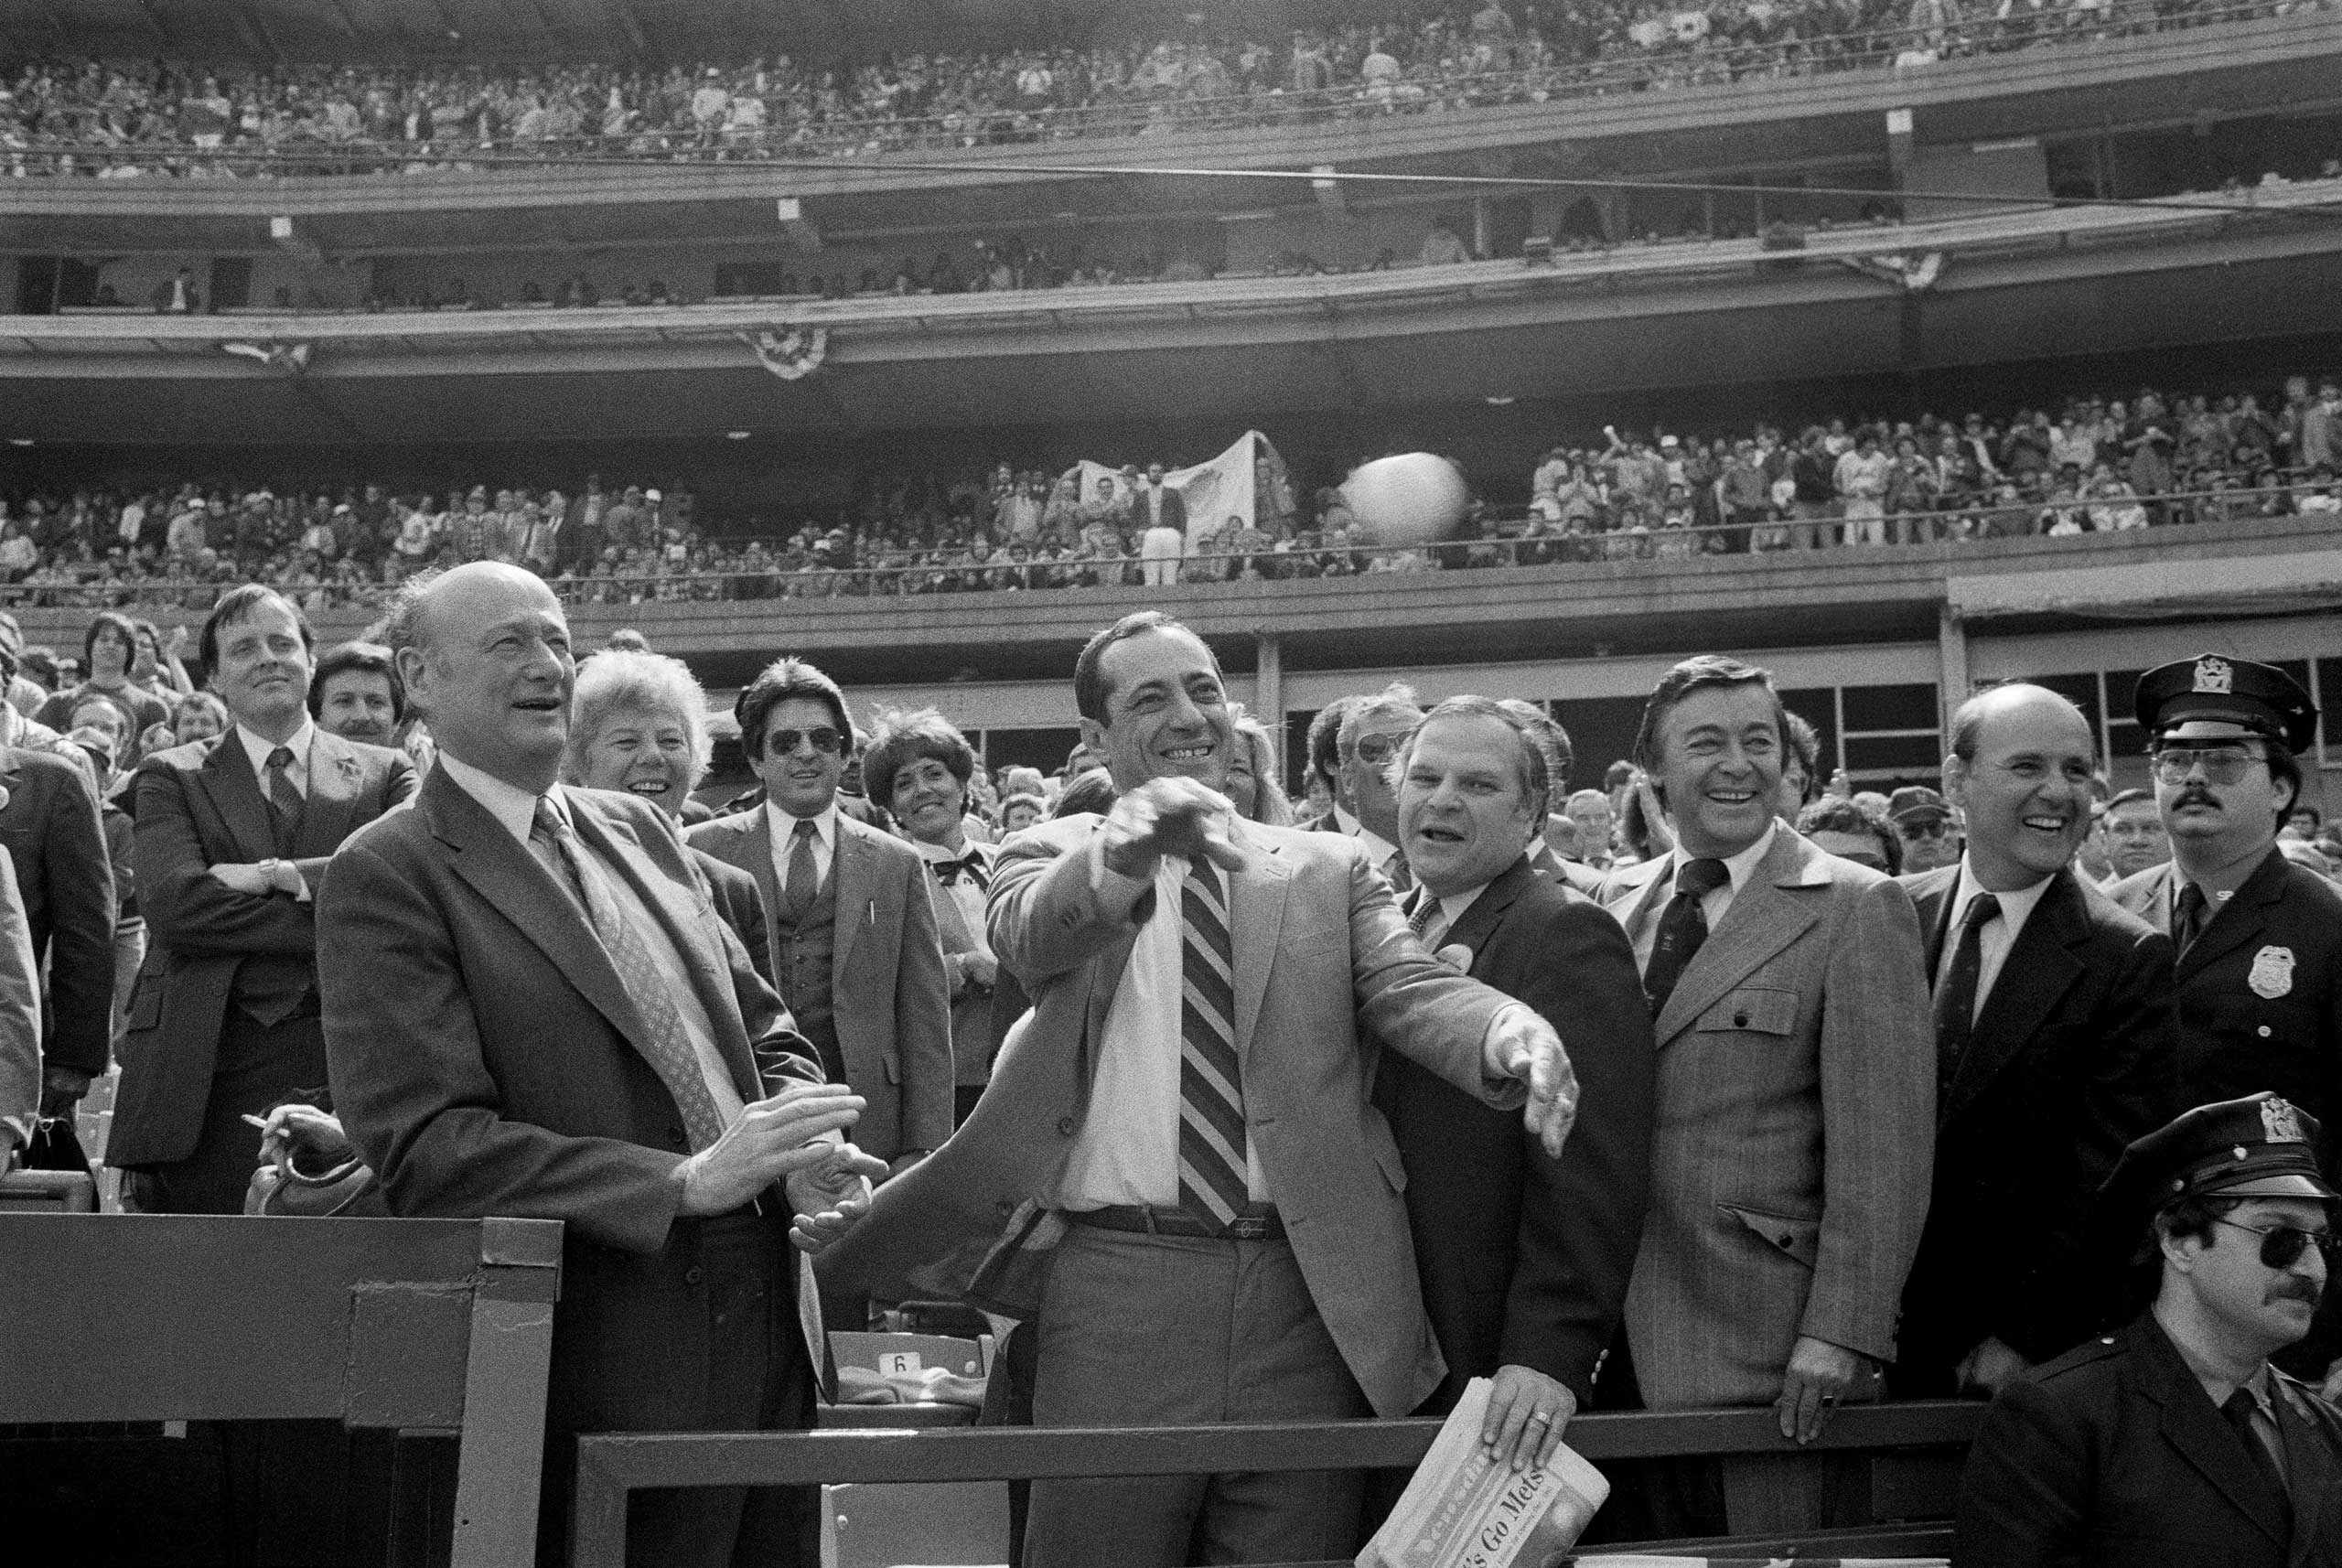 Gov. Mario Cuomo, with some coaching by Mayor Ed Koch, left, throws out the first pitch at Shea Stadium, before a New York Mets game in New York City on April 5, 1983.